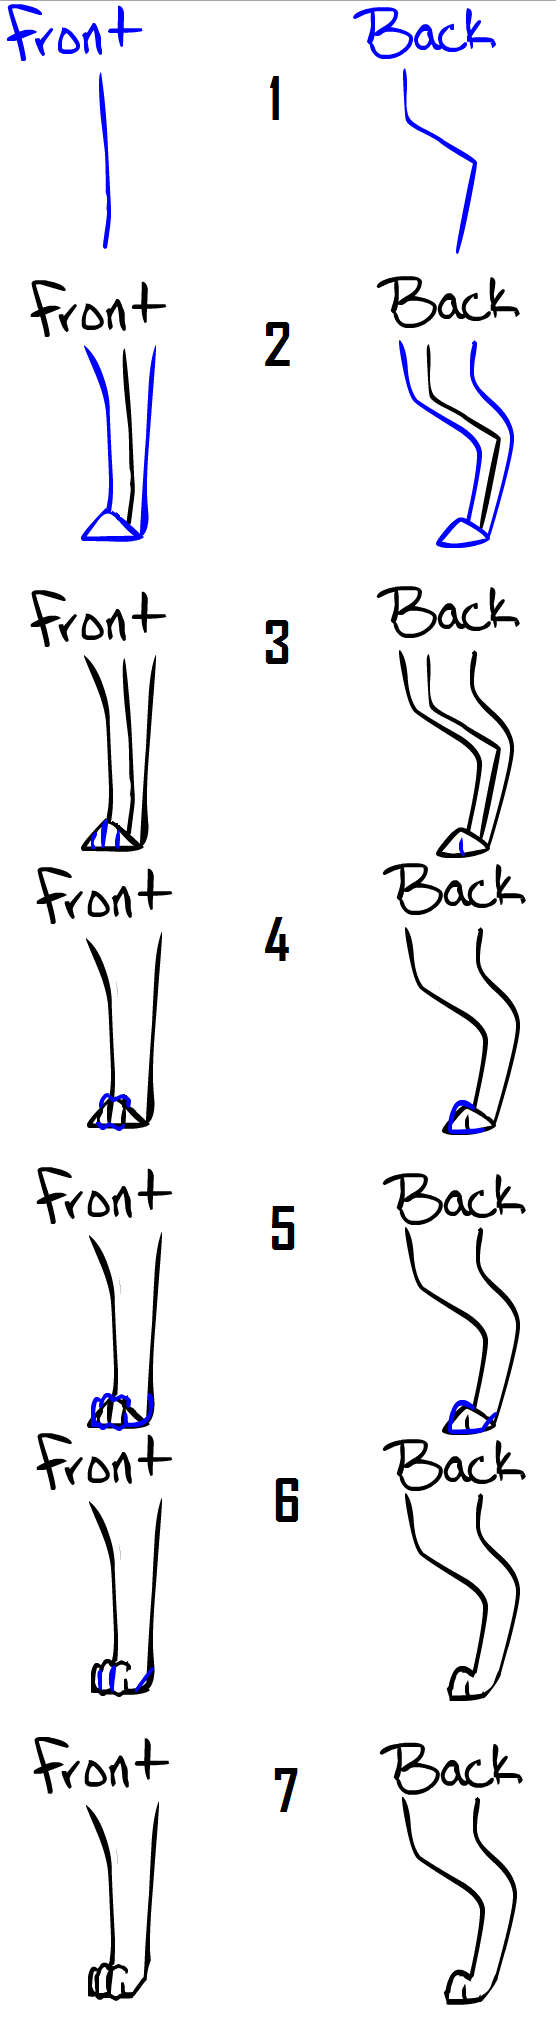 How to draw Dog_Cat legs_feet by Qexx on DeviantArt